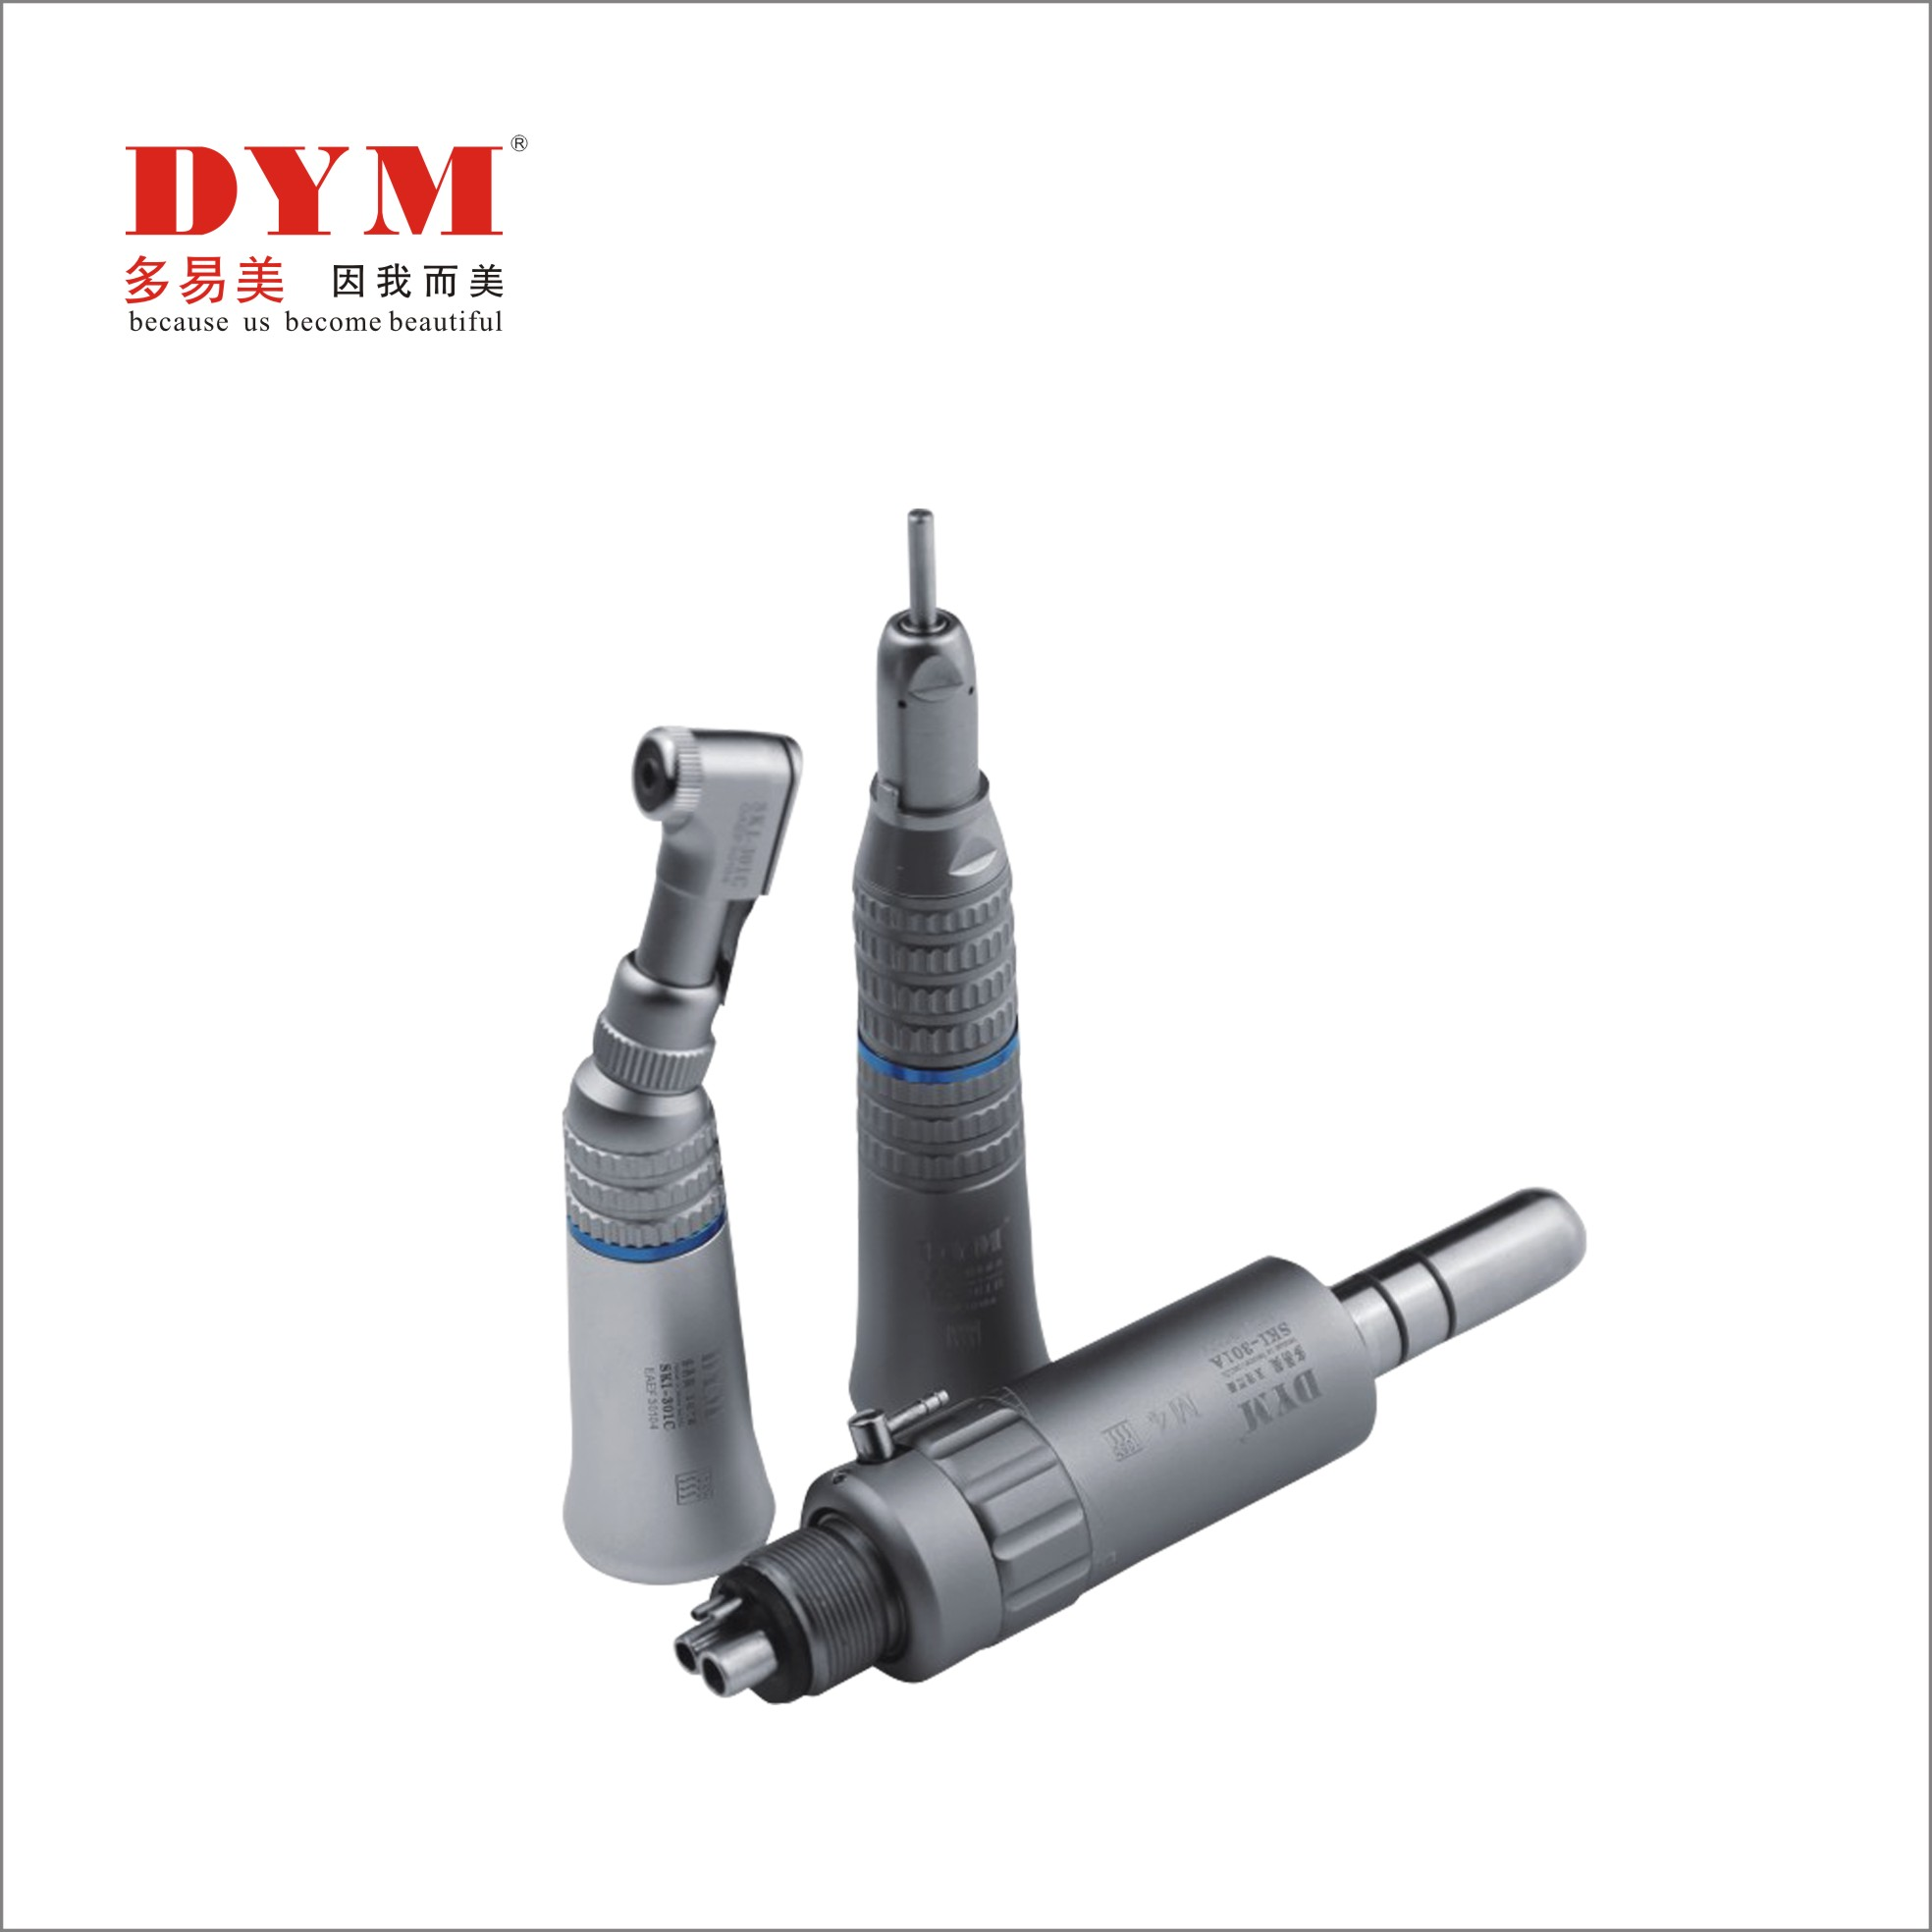 high frequency contra angle low speed dental turbine handpiece Manufacturers, high frequency contra angle low speed dental turbine handpiece Factory, Supply high frequency contra angle low speed dental turbine handpiece